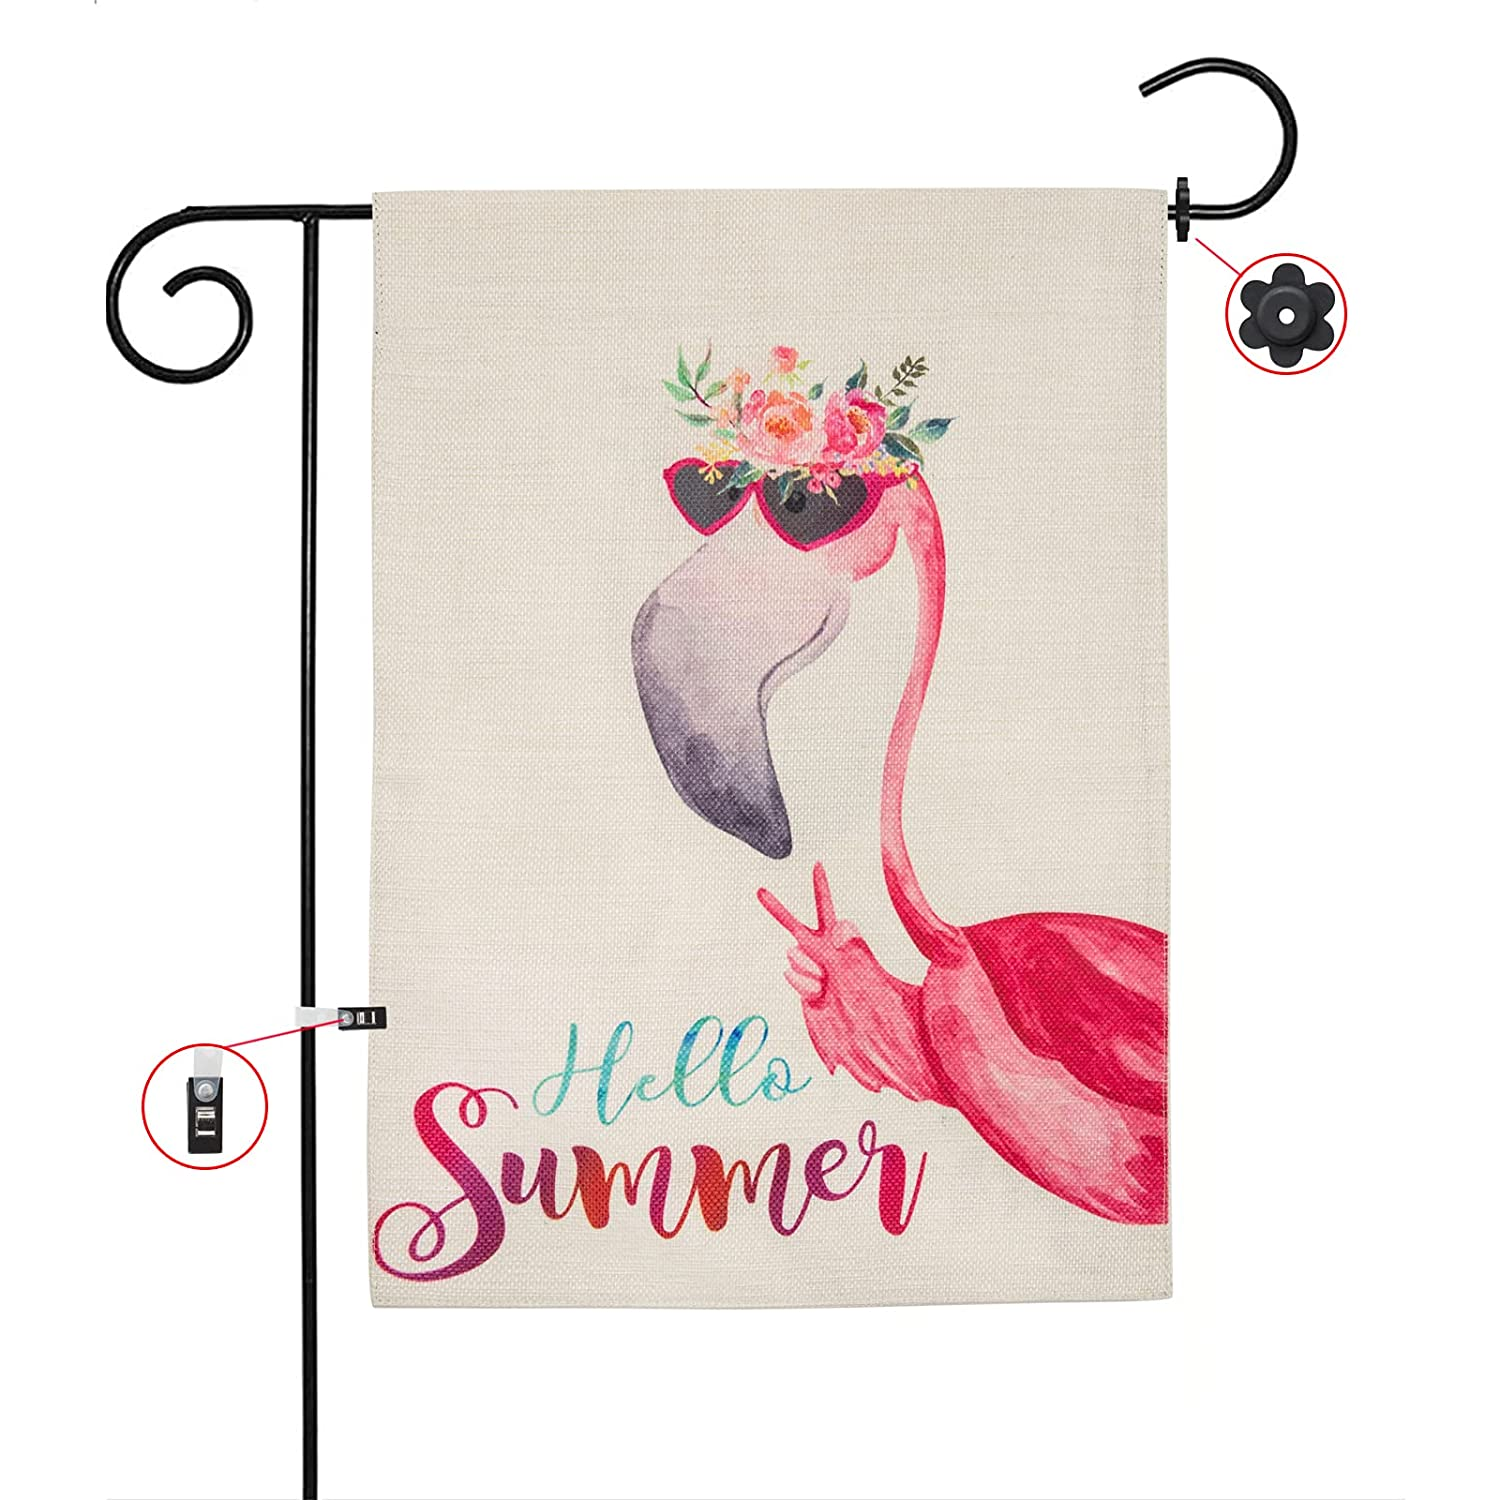 Hello Summer Flamingo Garden Flag, Vertical Double Sided 12.5 x 18 Inch Farmhouse Home Decor Banner, Outdoor Front Porch Decoration Welcome Yard Sign with Stopper and Anti-Wind Clip Set Burlap Pink